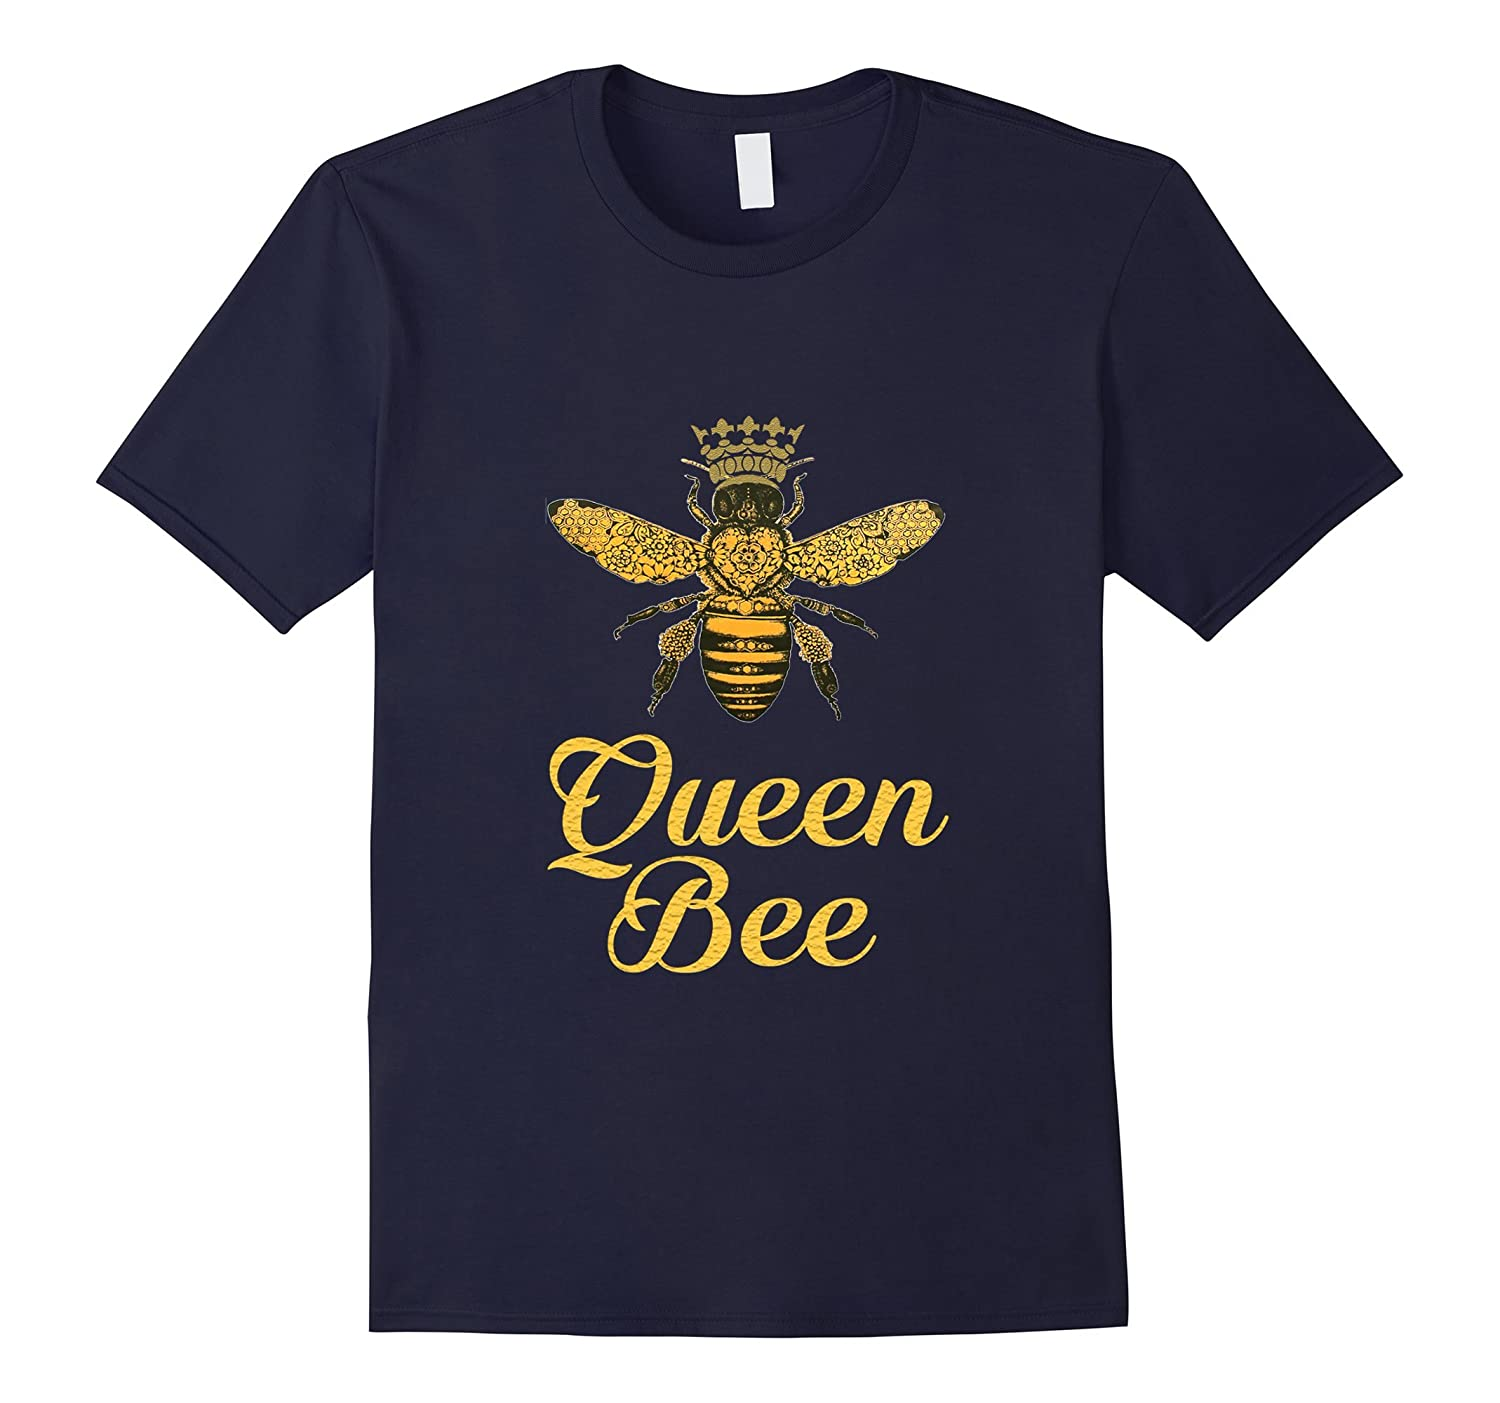 Queen Bee Crown T shirt Tee - Perfect for Bee Lovers!-FL